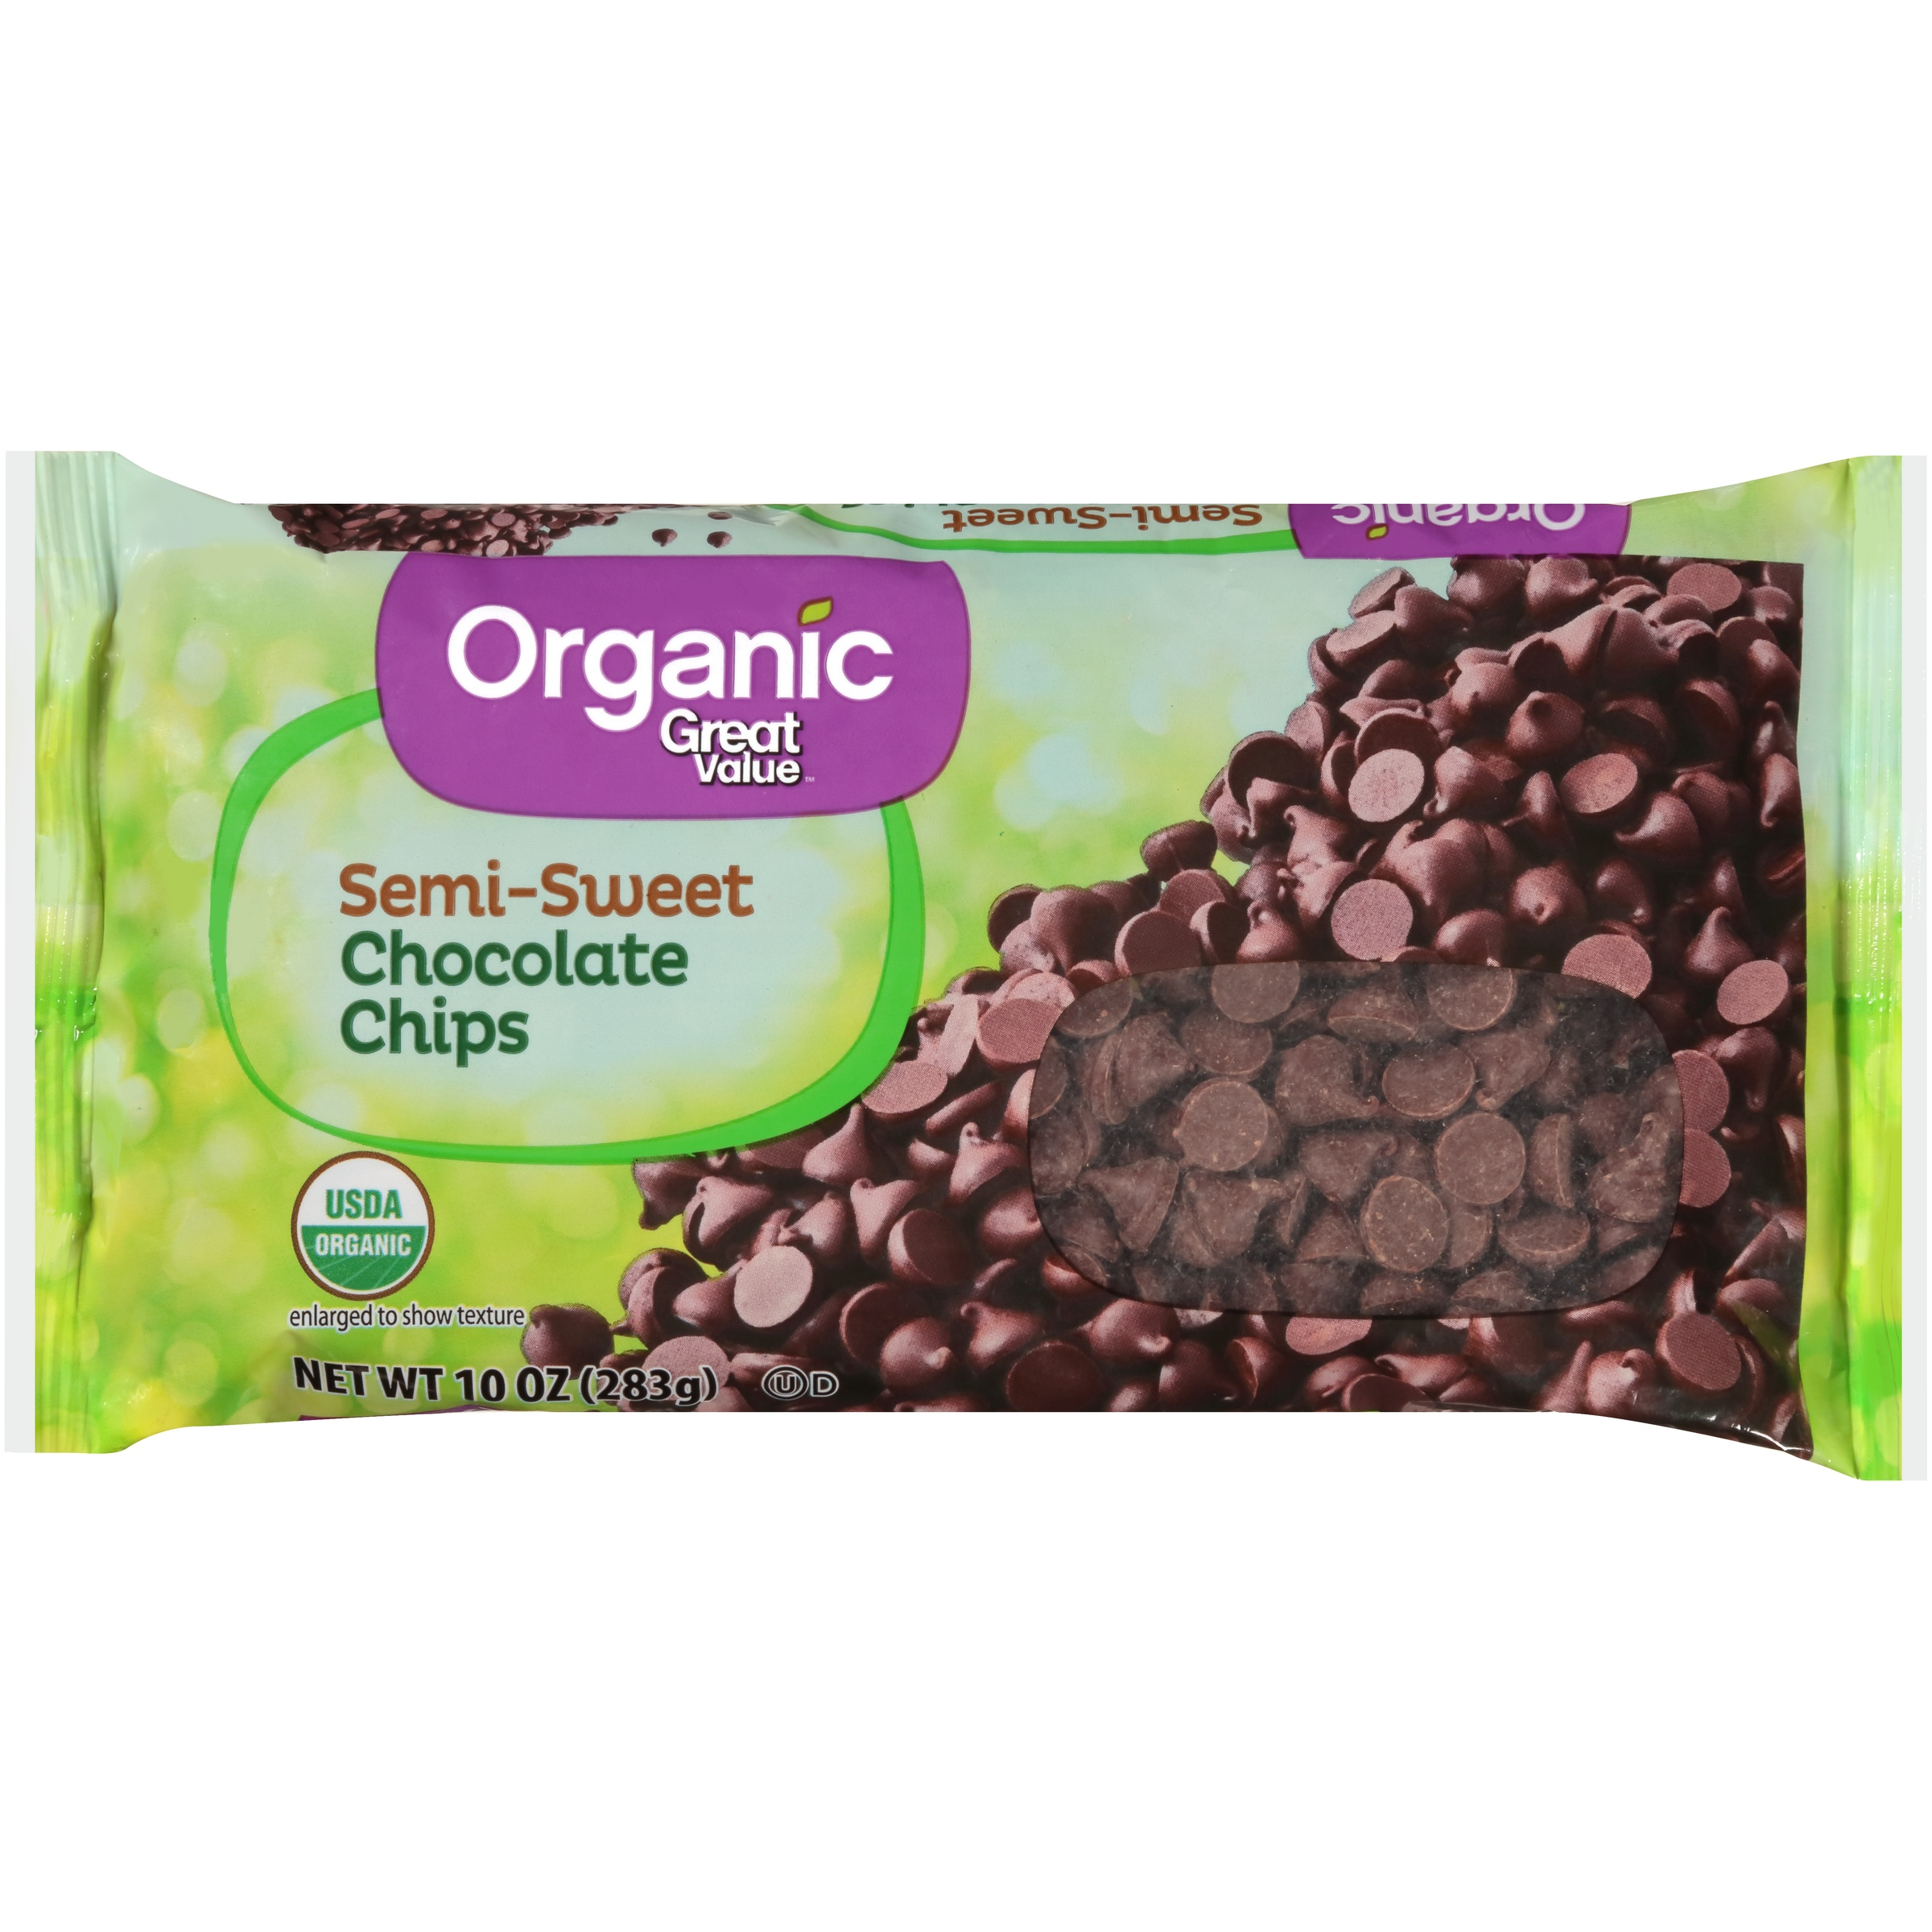 Great Value Organic Semi-Sweet Chocolate Chips, 10 oz